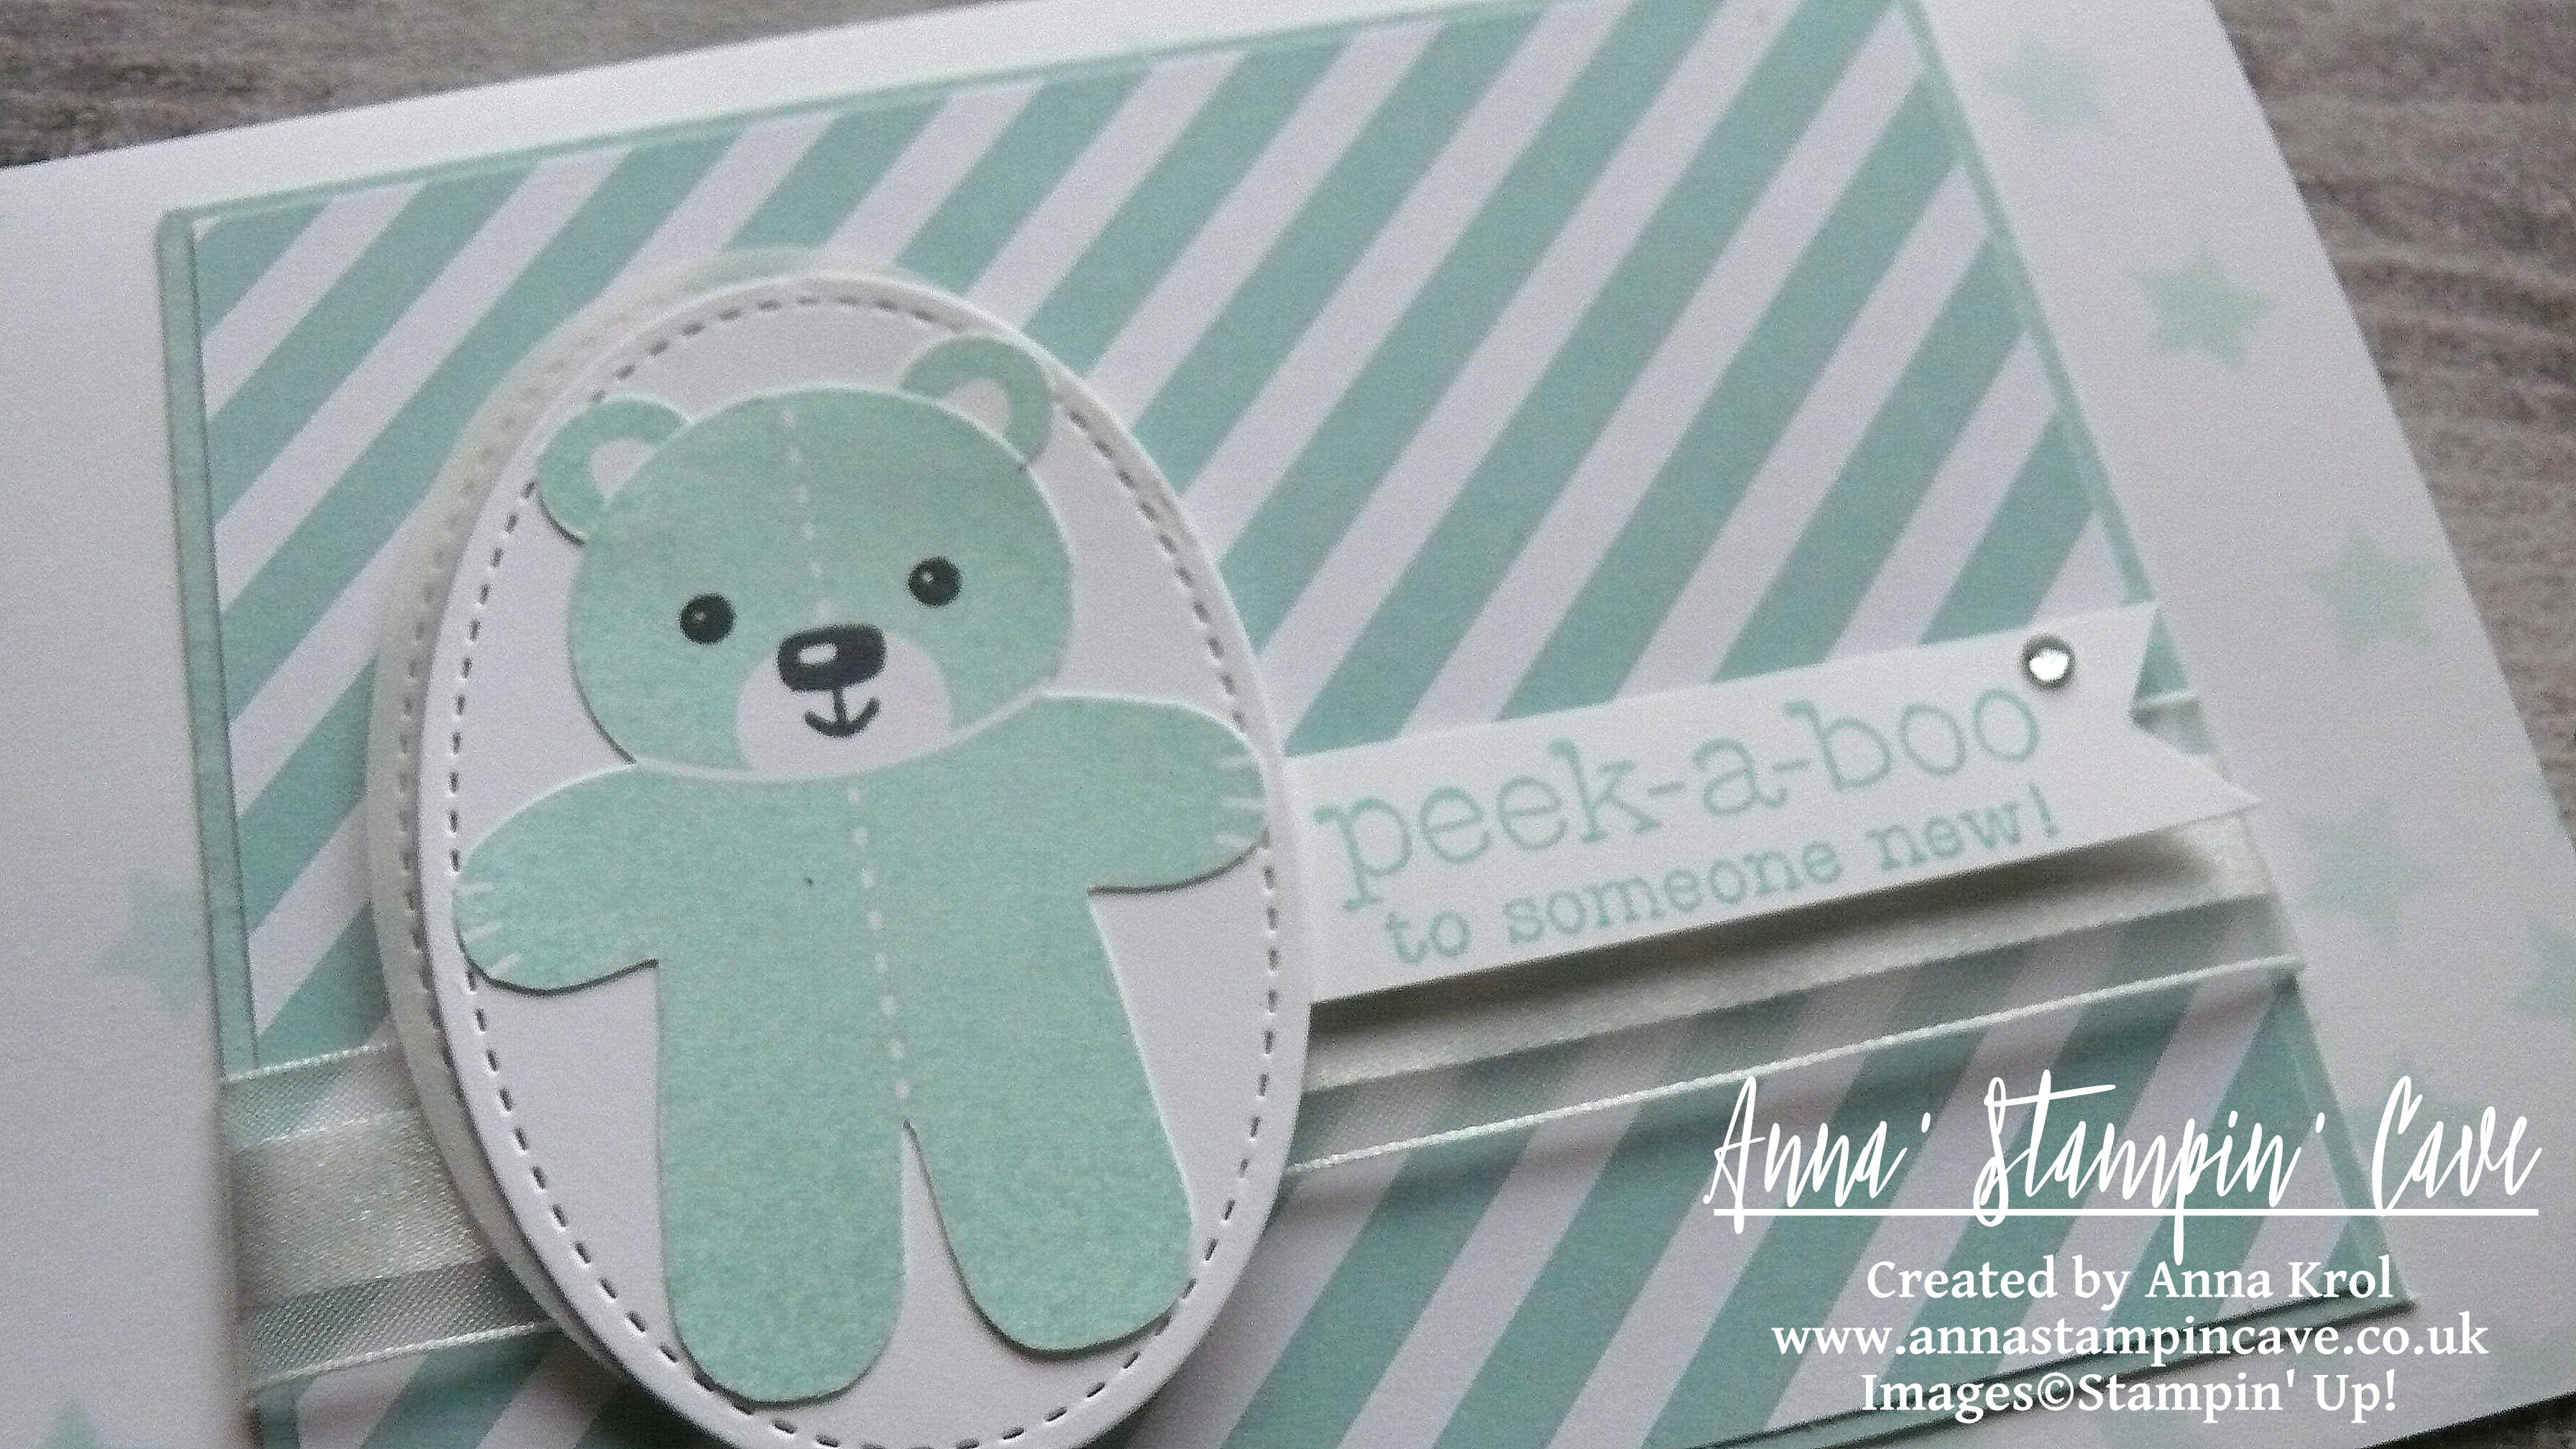 anna-stampin-cave-cookie-cutter-peek-a-boo-baby-card-pool-party